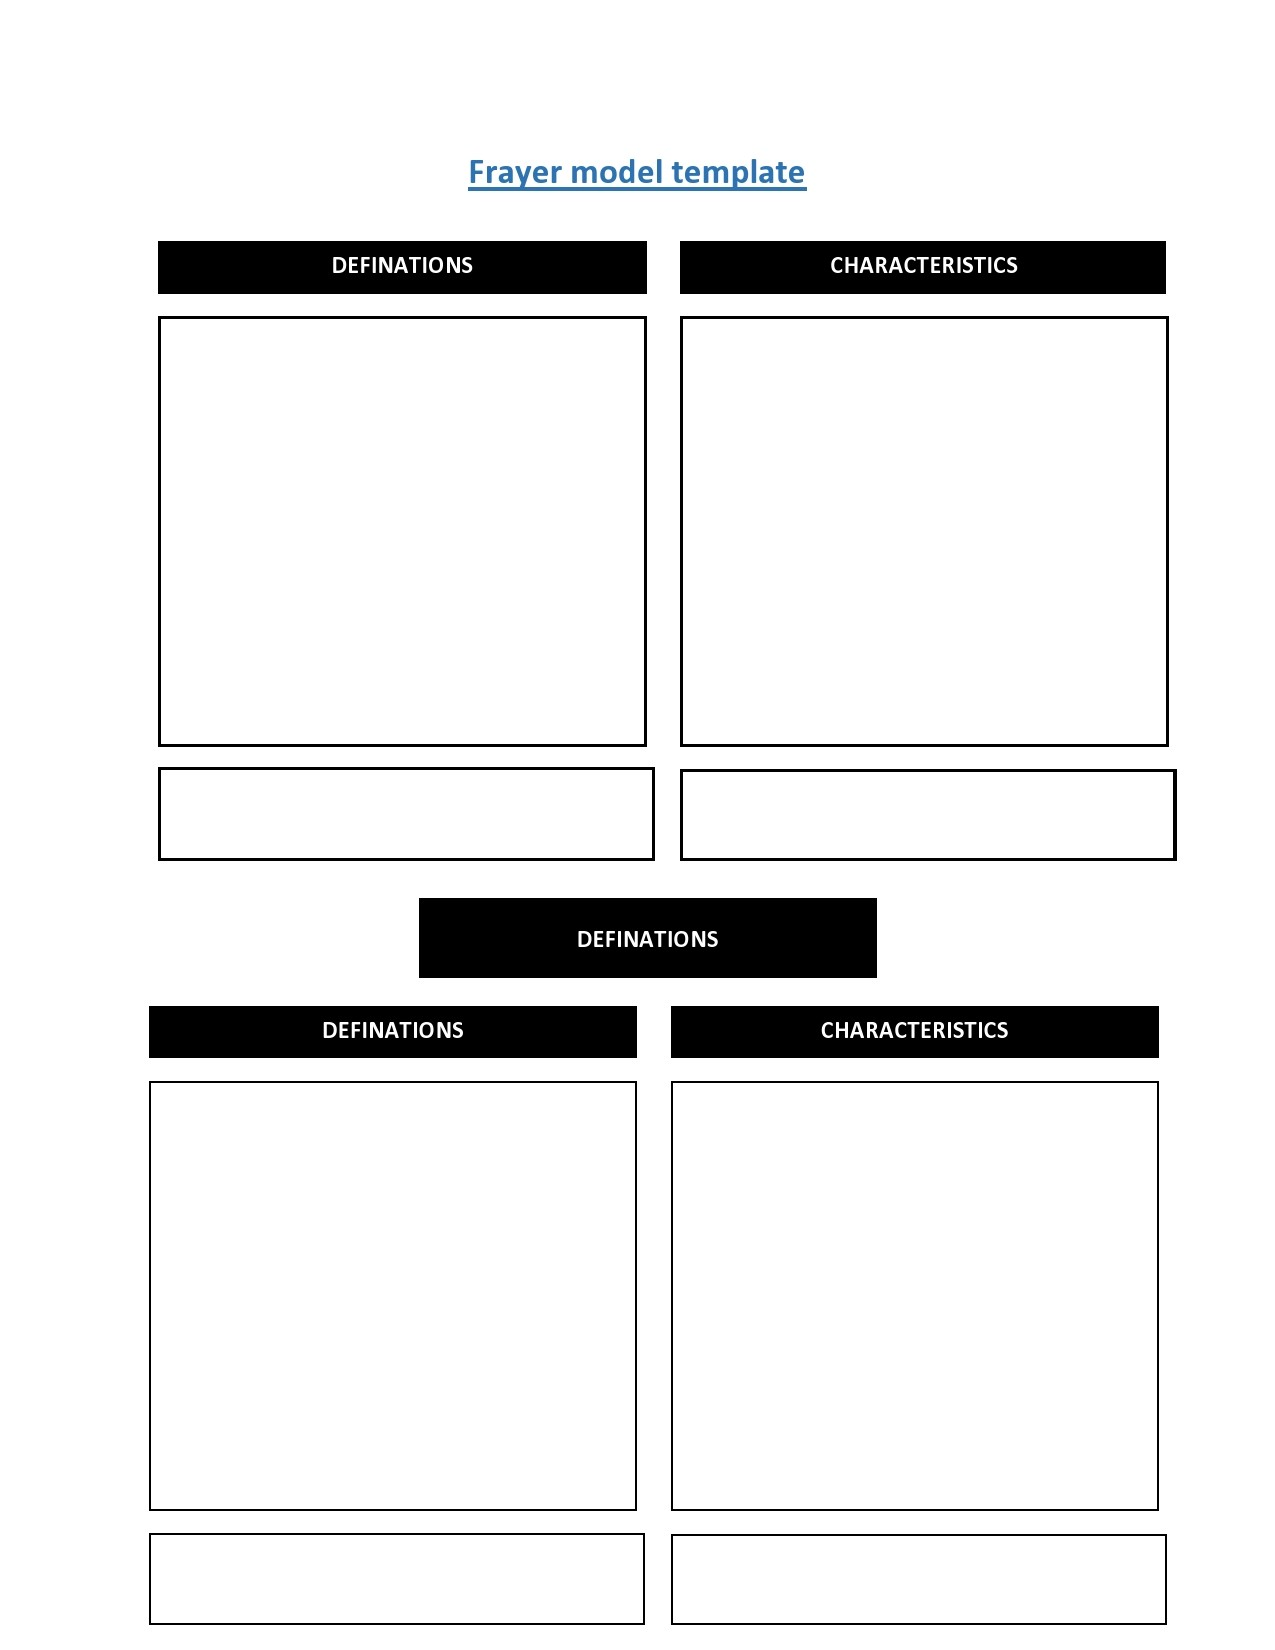 Free frayer model template 05